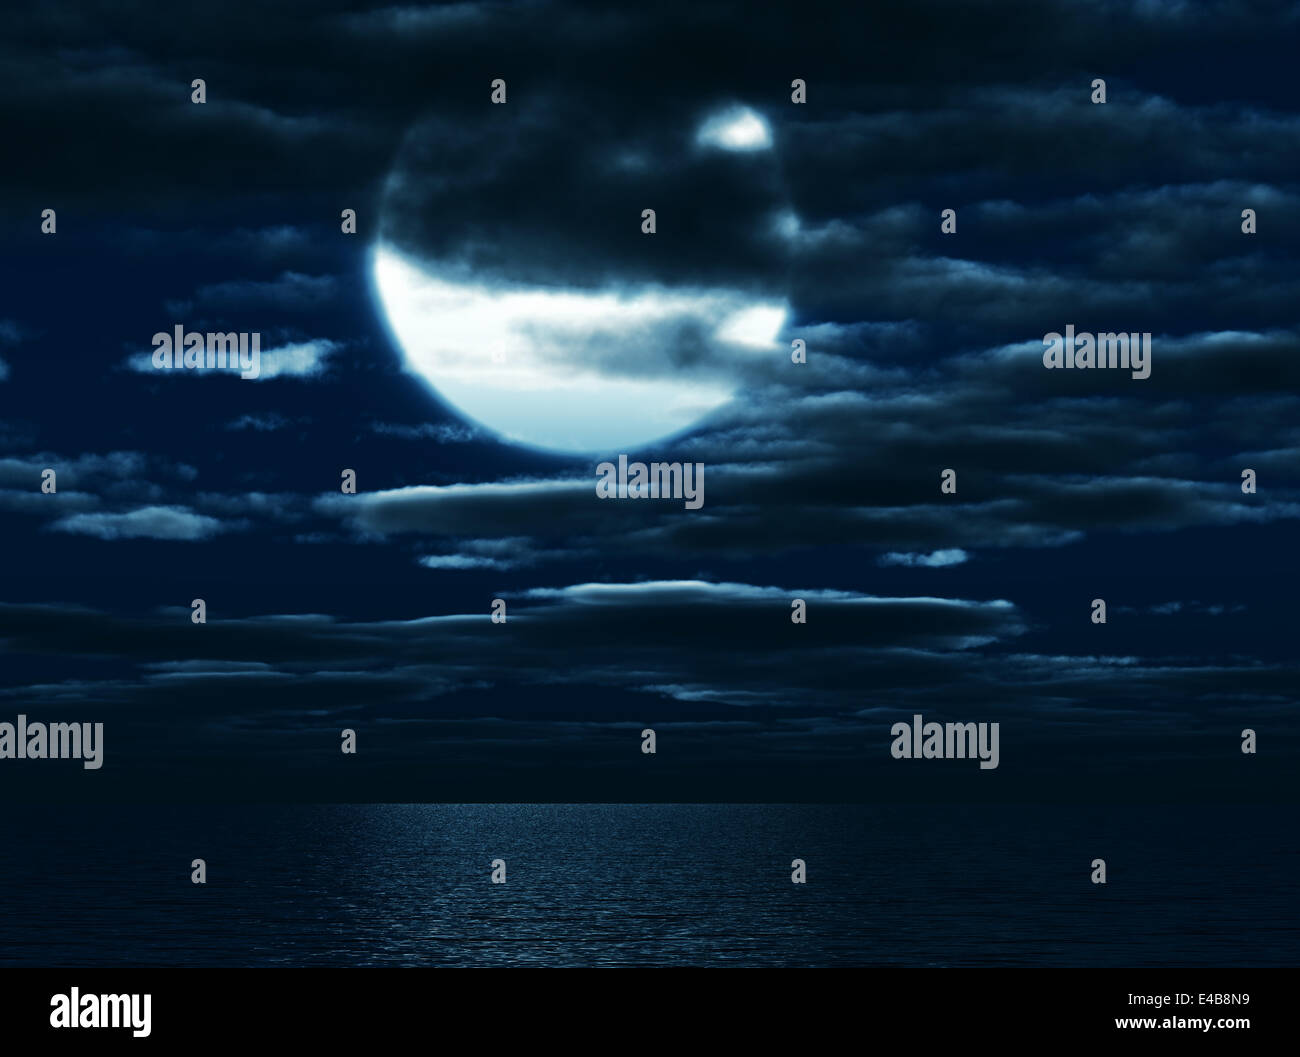 Shone circle of the moon in darkness - Stock Image